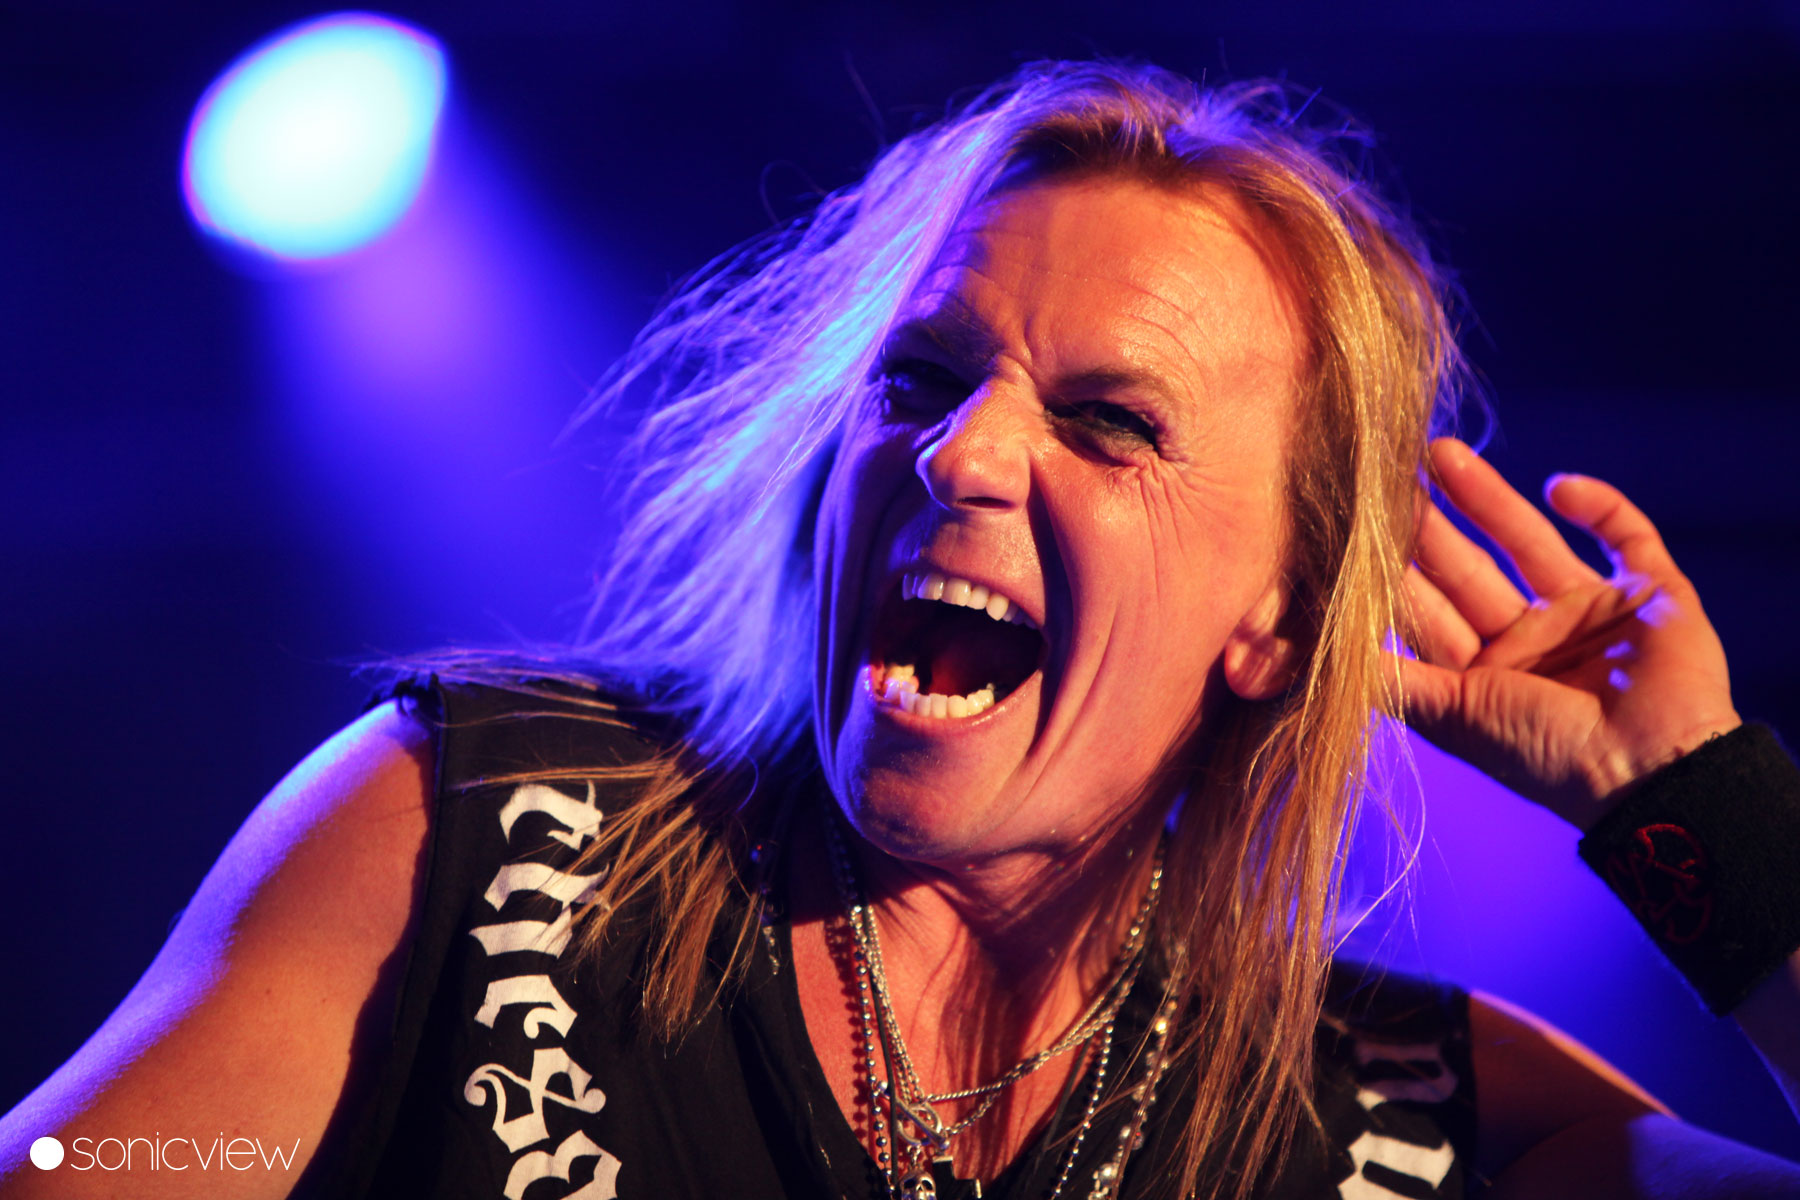 Pretty Maids: Live at Tivoli 2011, Copenhagen, Denmark